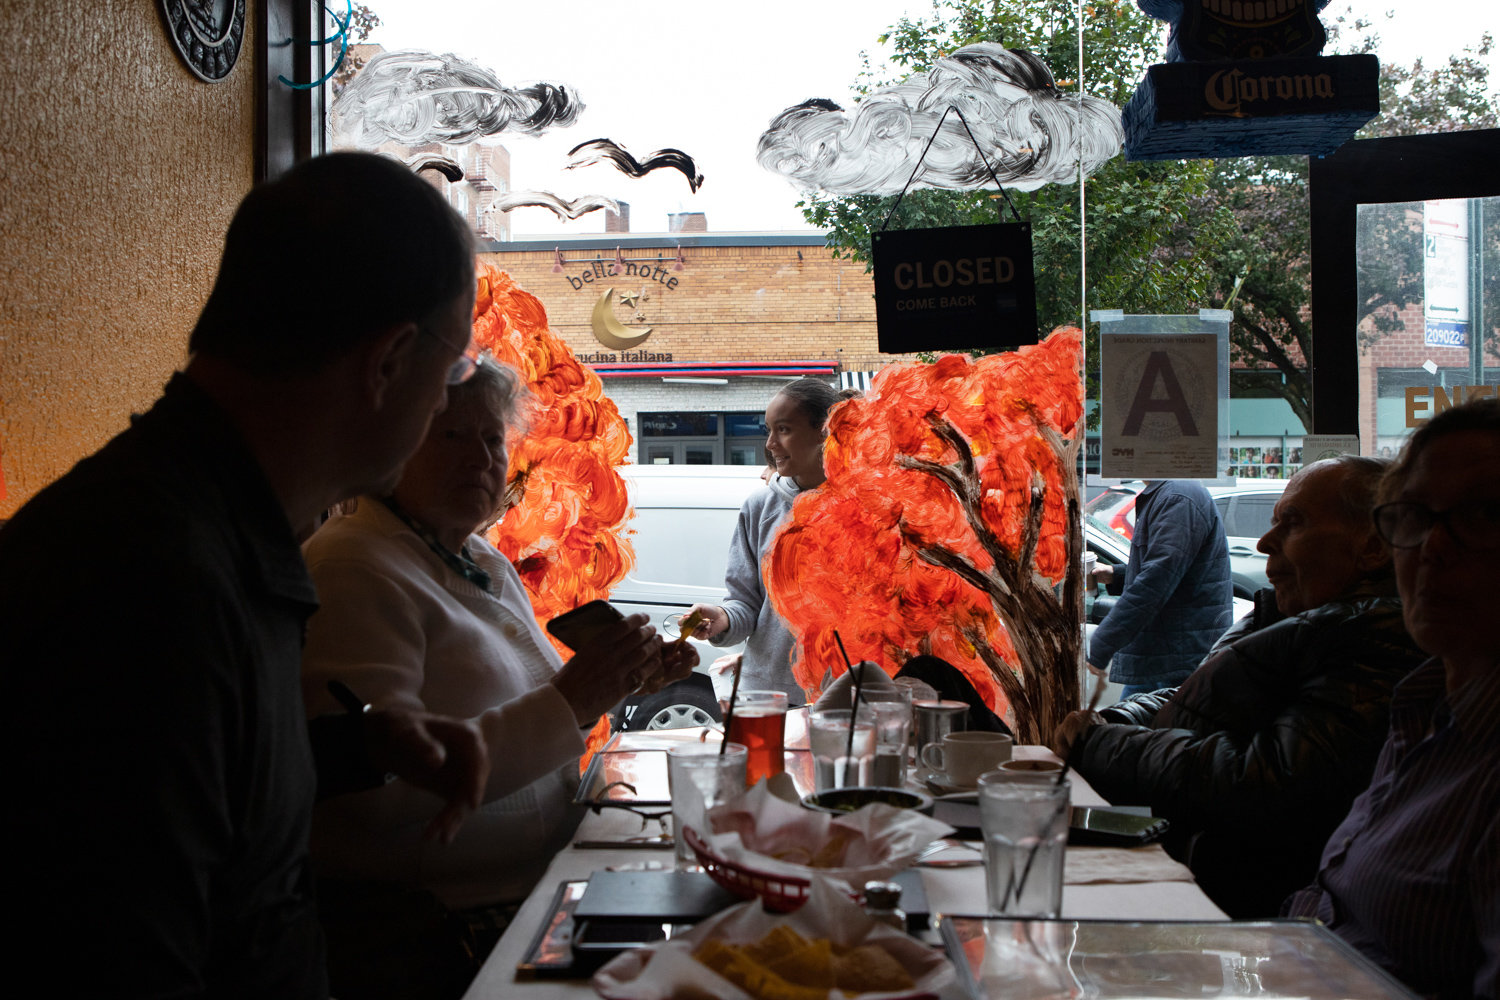 A family enjoys a meal at Metate while children paint the restaurant's windows during the Kiwanis Club's annual Halloween window painting contest.